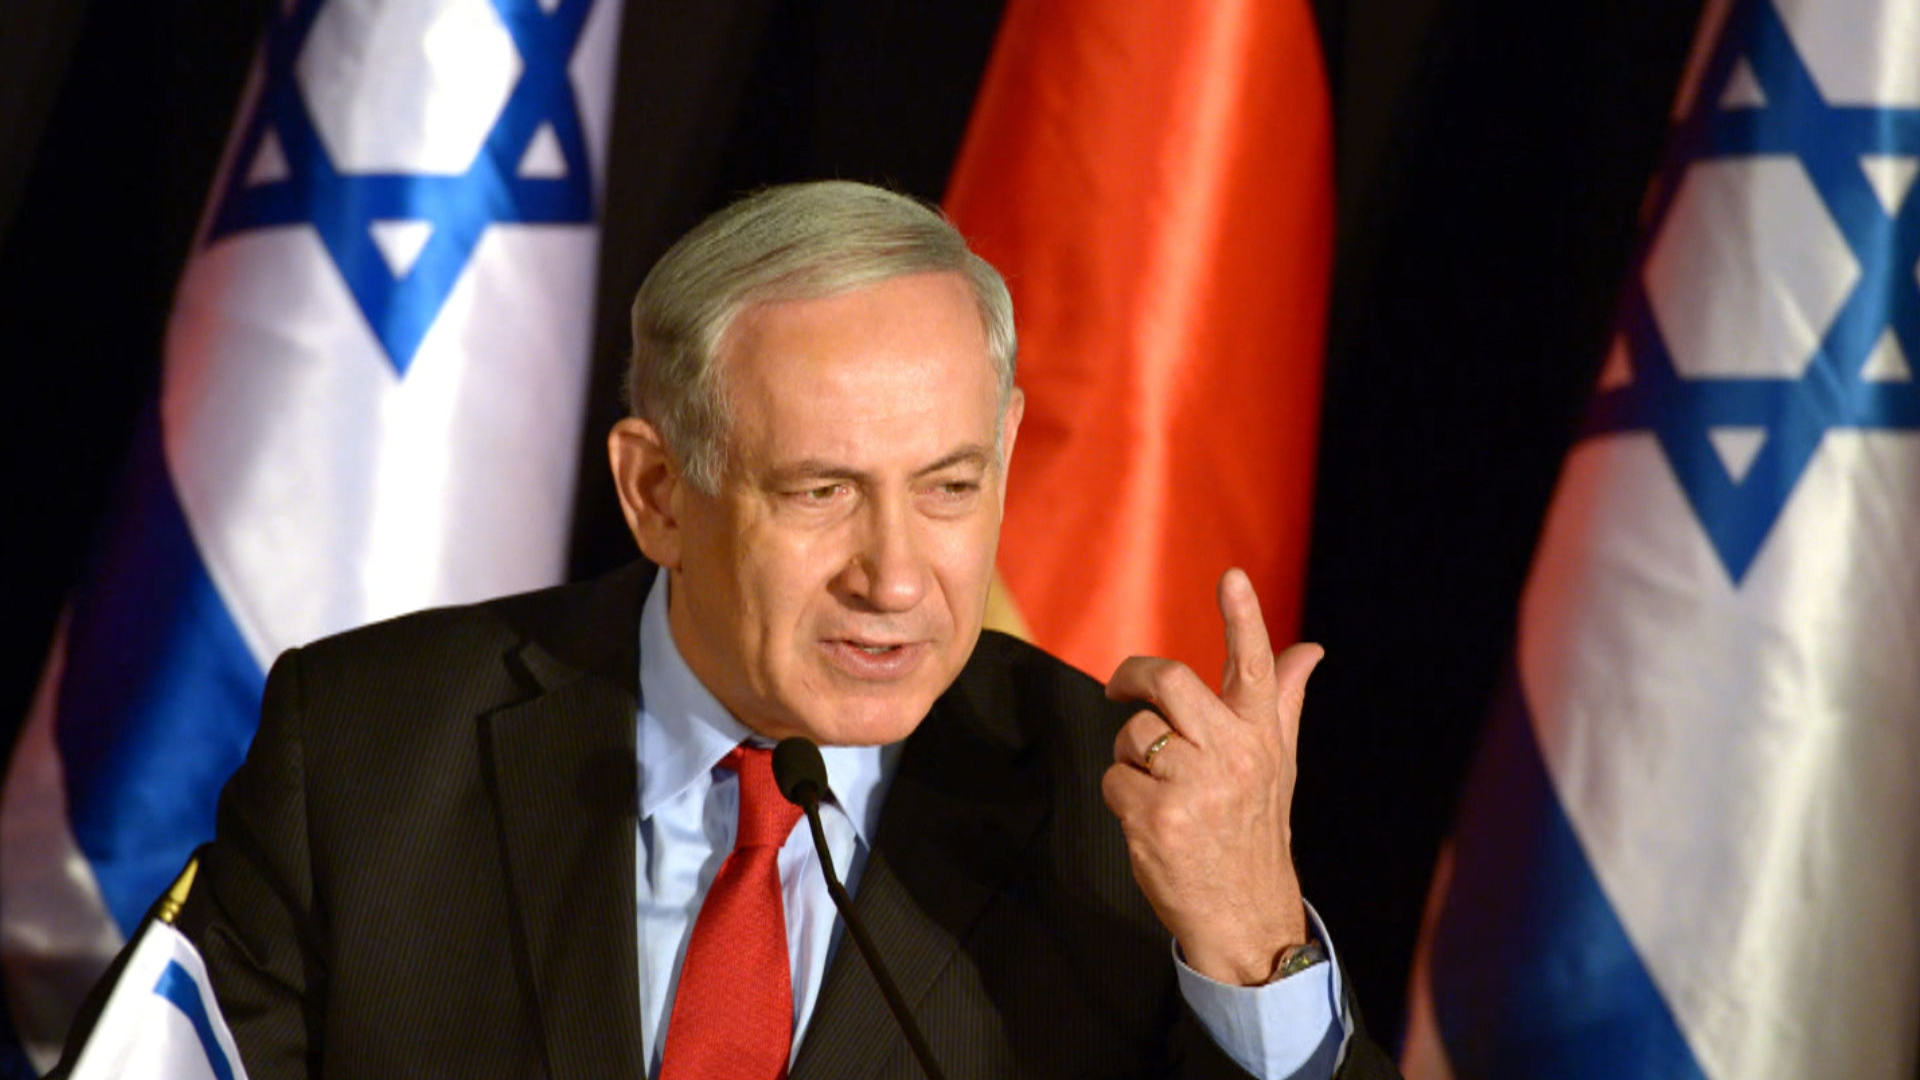 Netanyahu 'holds the key' to peace deal